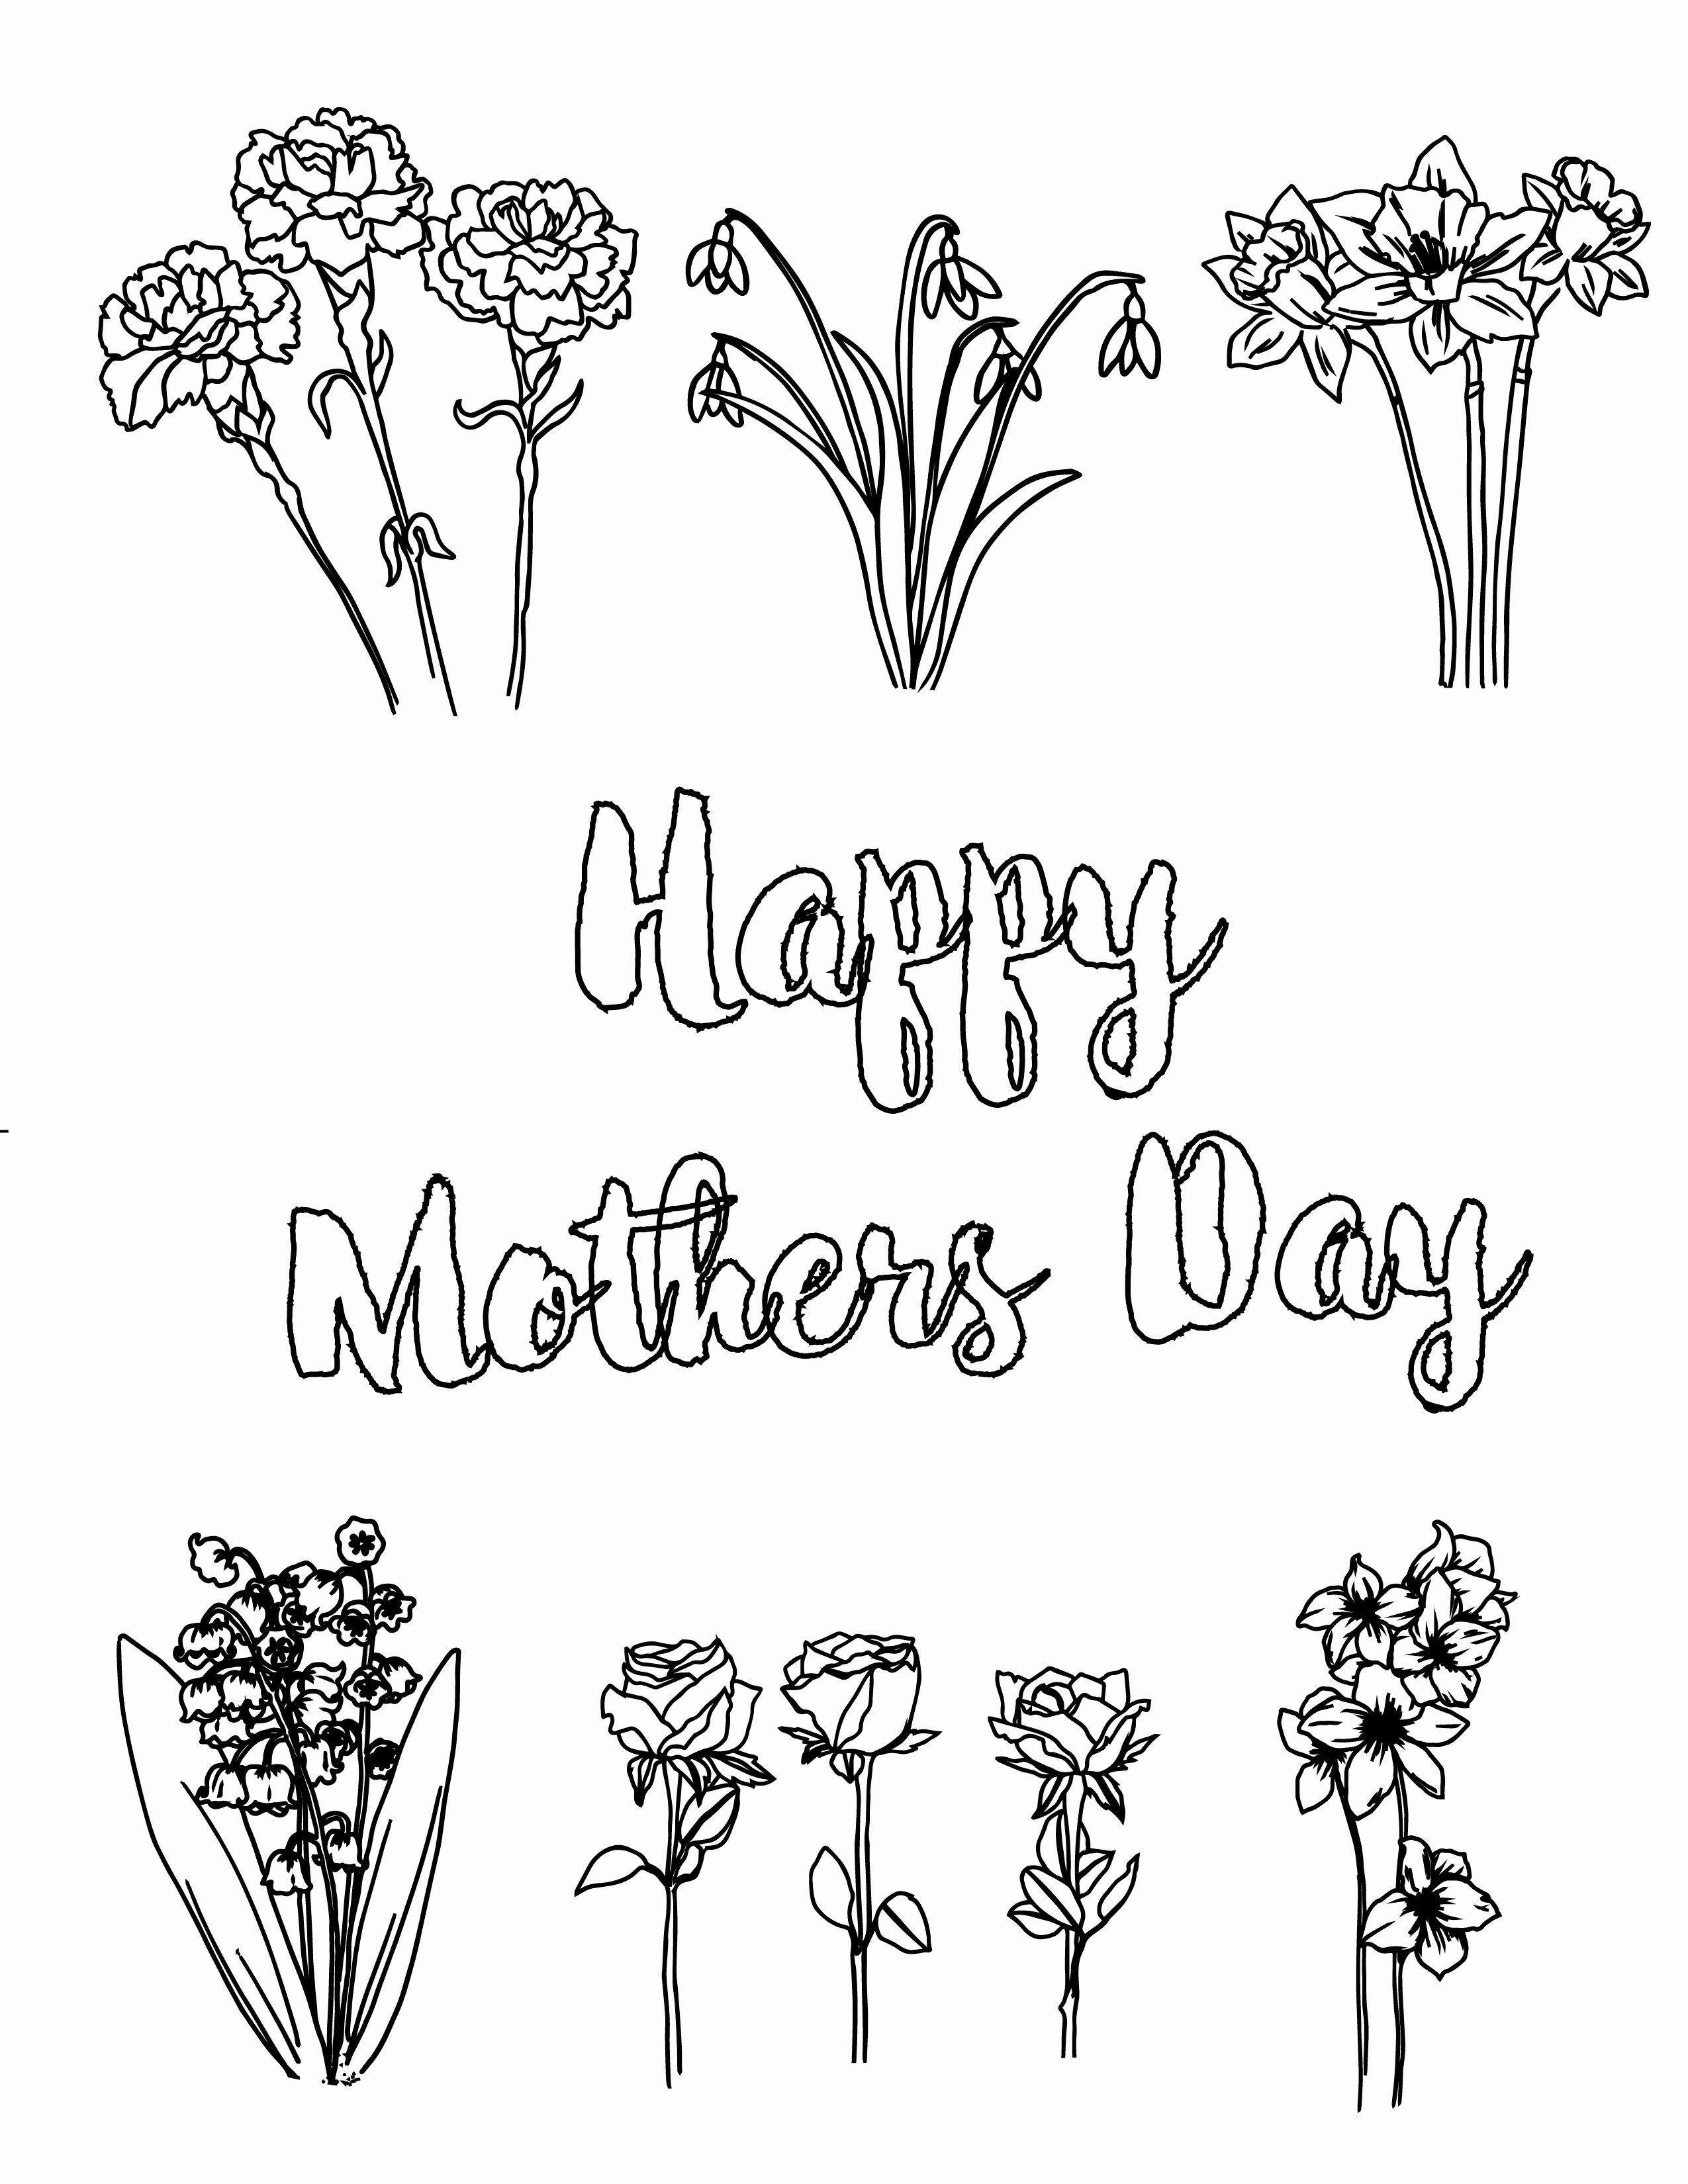 Mother Day Card Coloring Page Lovely Coloring Book Incredible Mothers Day Col Mothers Day Coloring Pages Mothers Day Coloring Cards Mothers Day Coloring Sheets